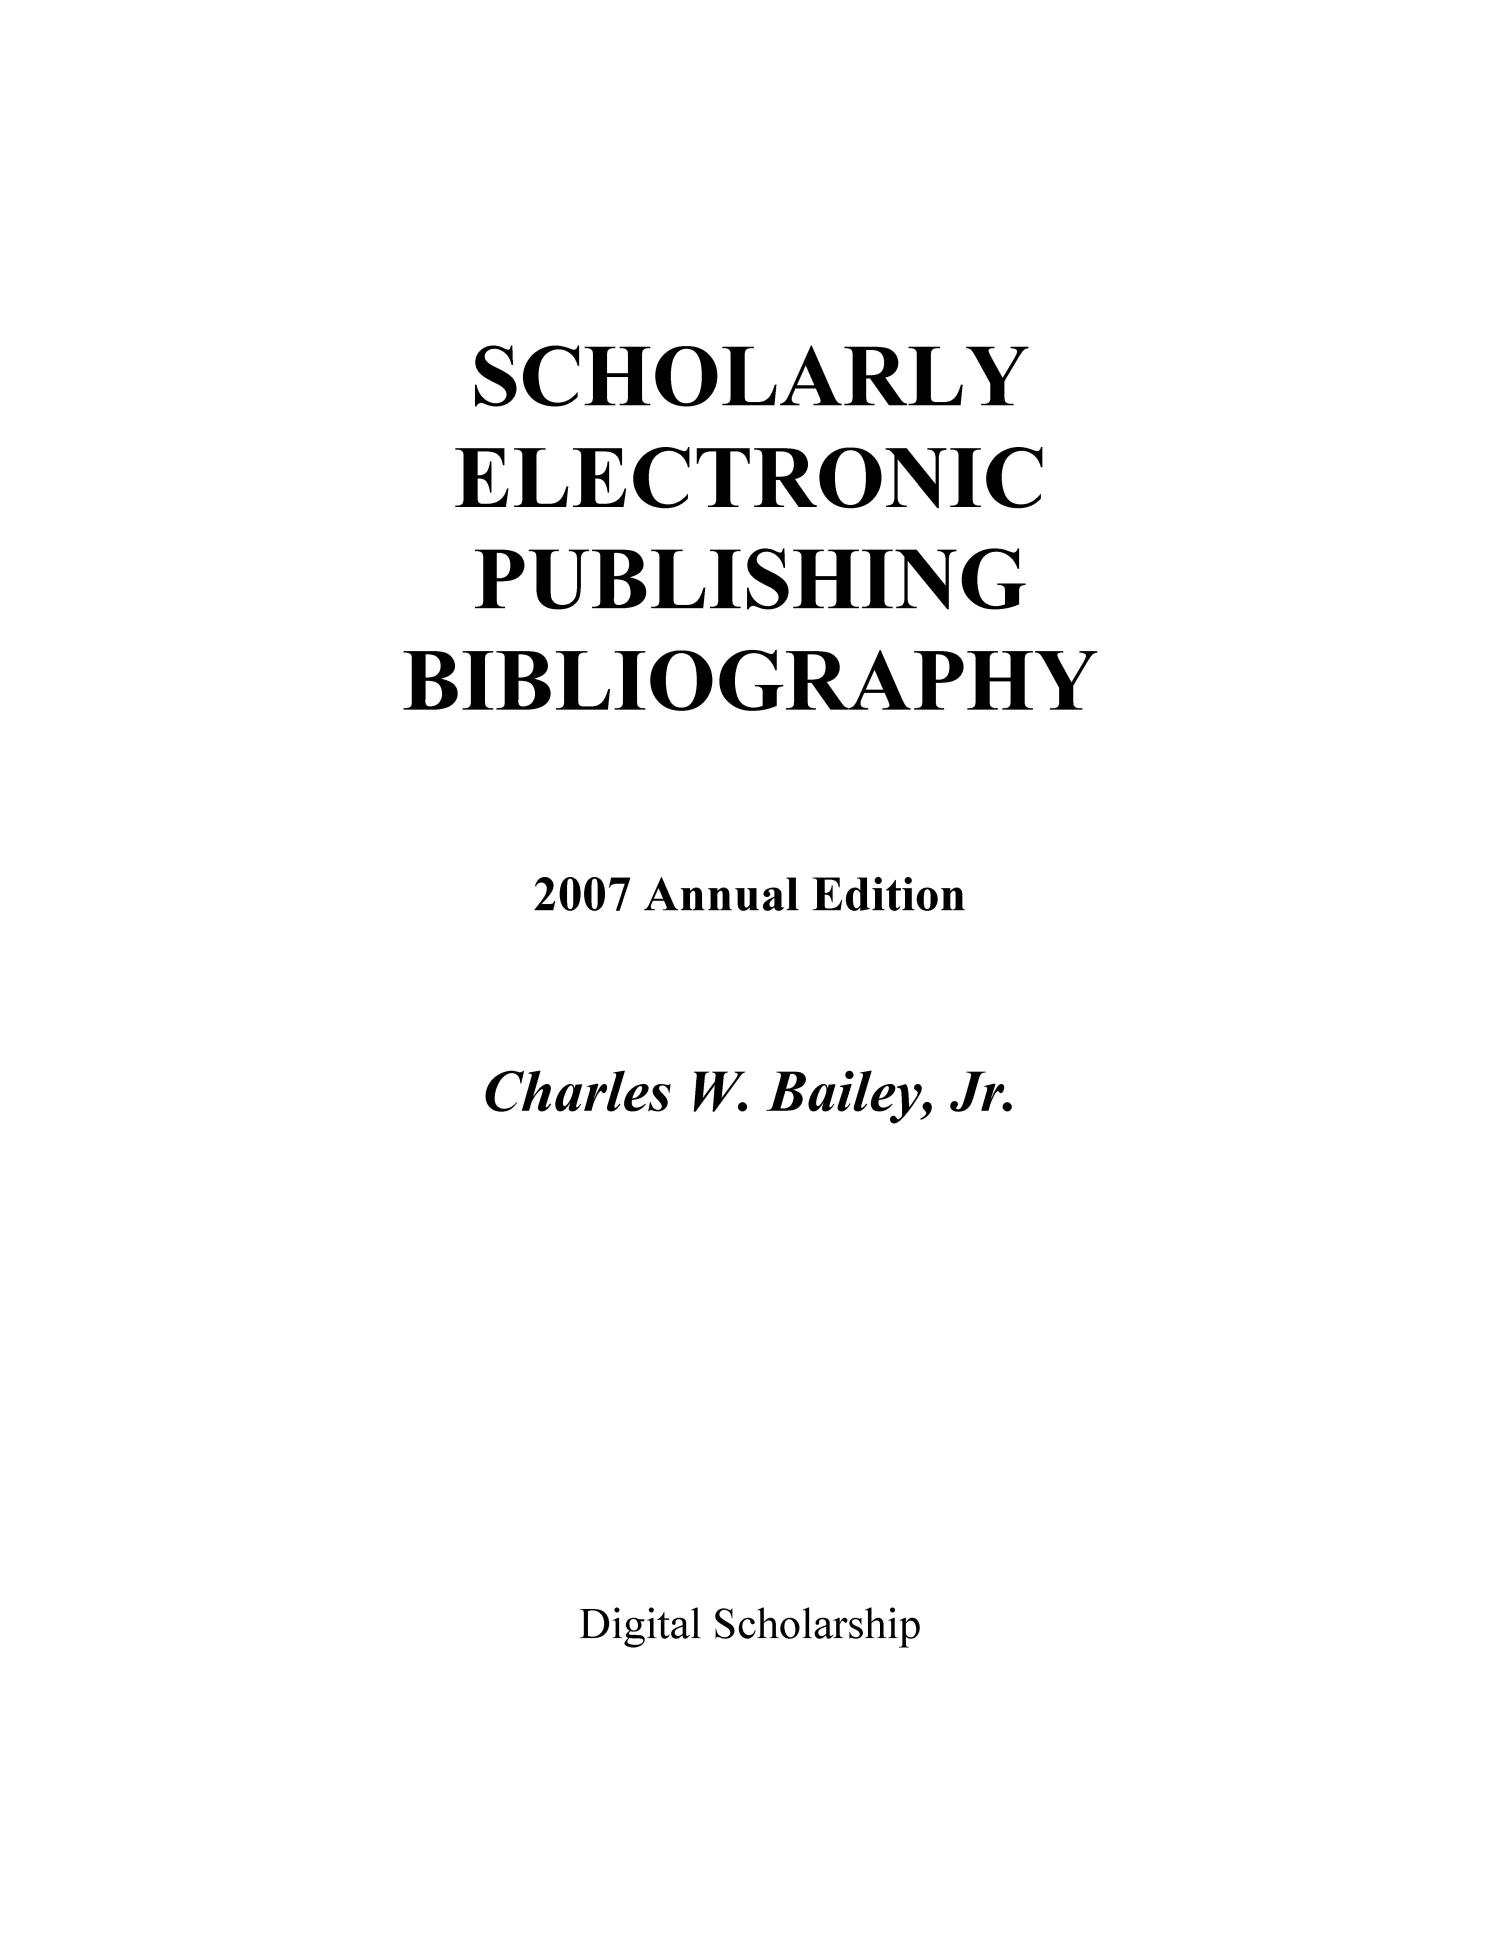 Scholarly Electronic Publishing Bibliography 2007 Annunal Edition